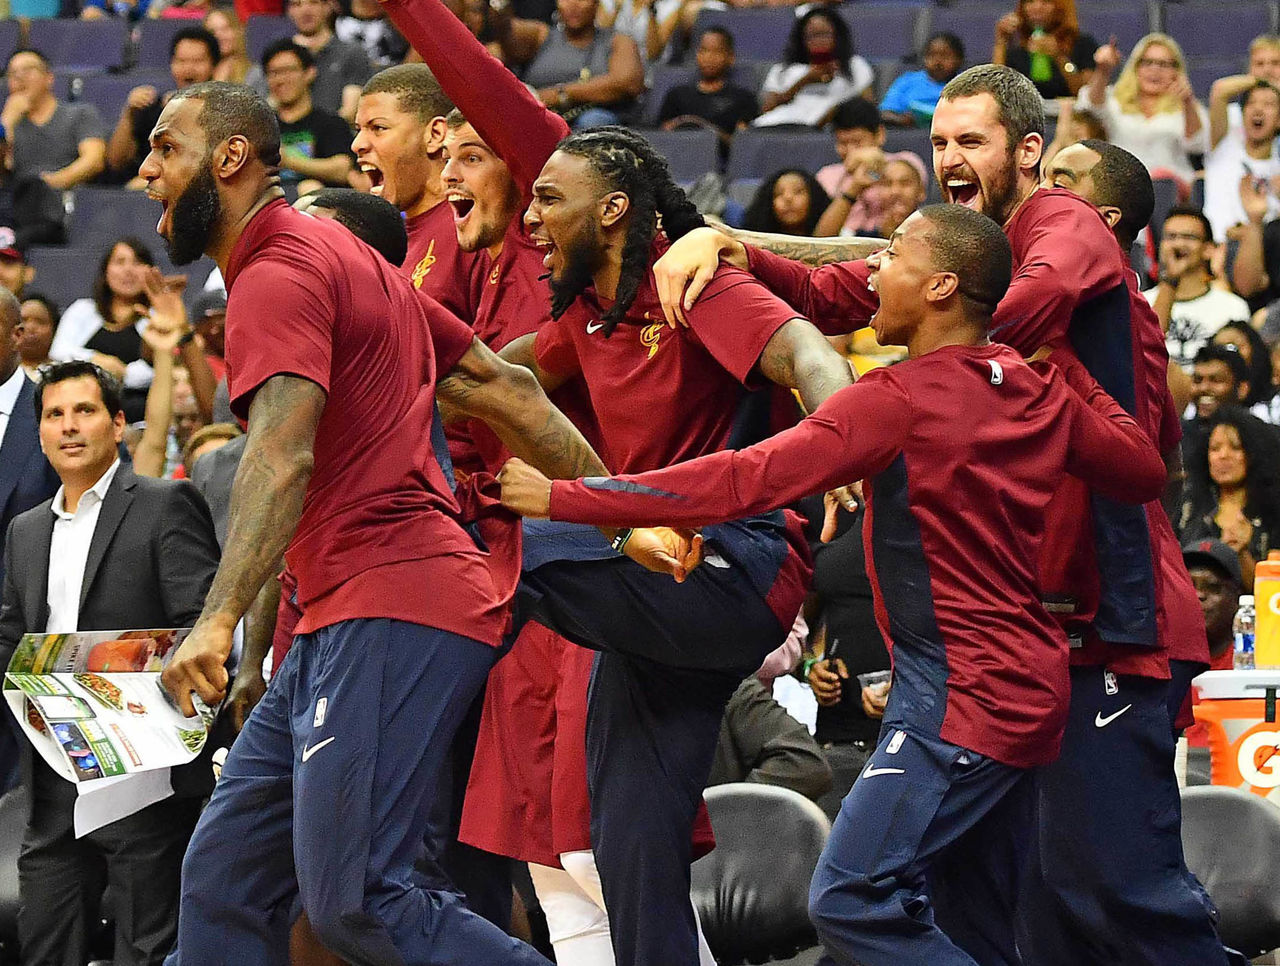 Cropped 2017 10 08t203802z 404848347 nocid rtrmadp 3 nba preseason cleveland cavaliers at washington wizards